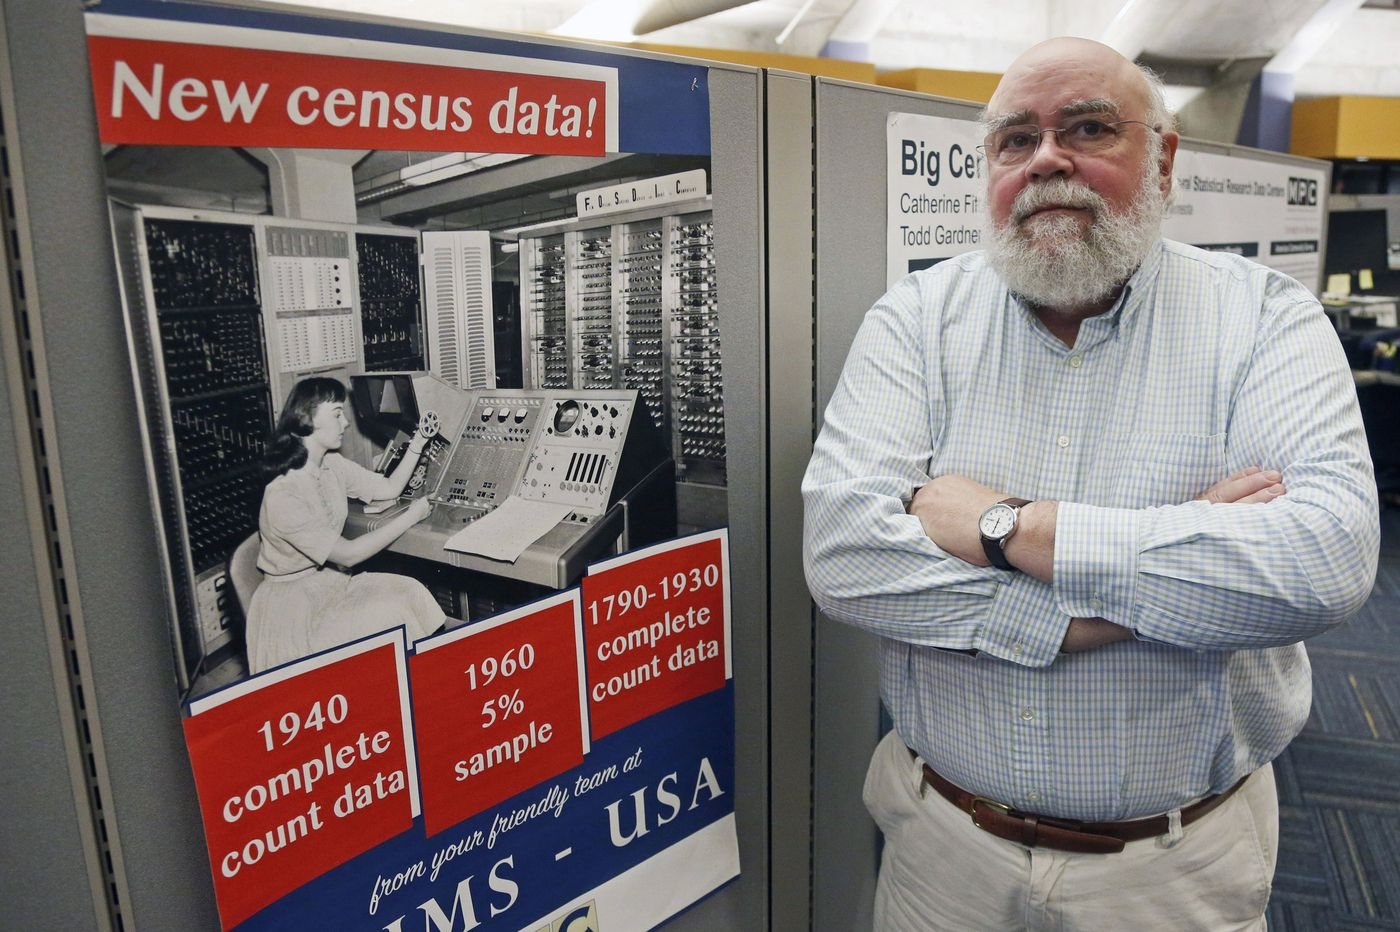 Census errs again, makes mistakes measuring poverty nationwide